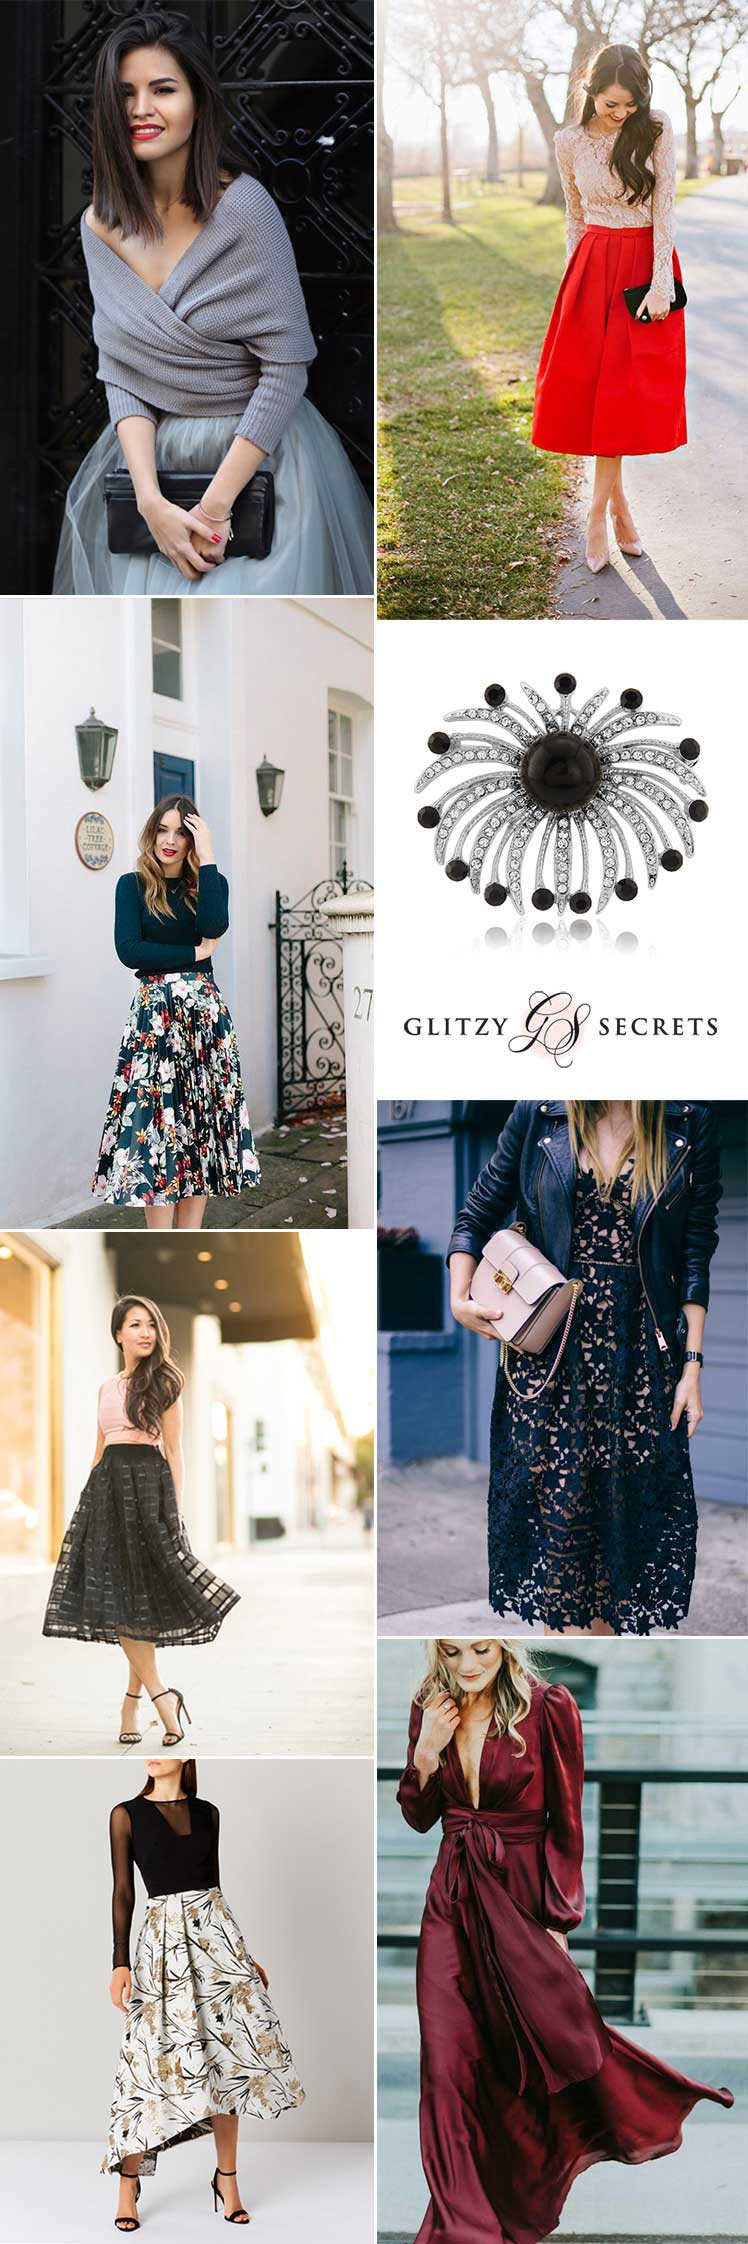 stylish guest outfits for a winter wedding